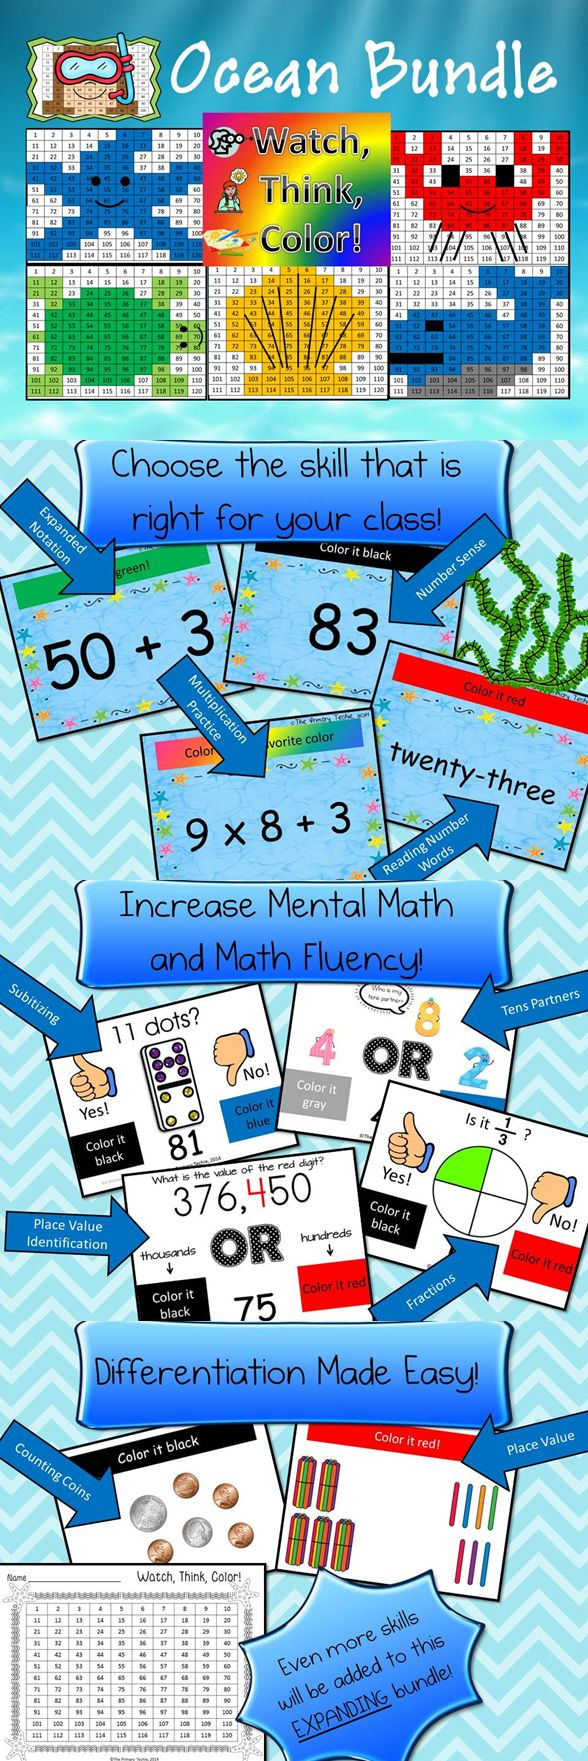 366 best Math Ideas images on Pinterest | Learning, Bedrooms and ...